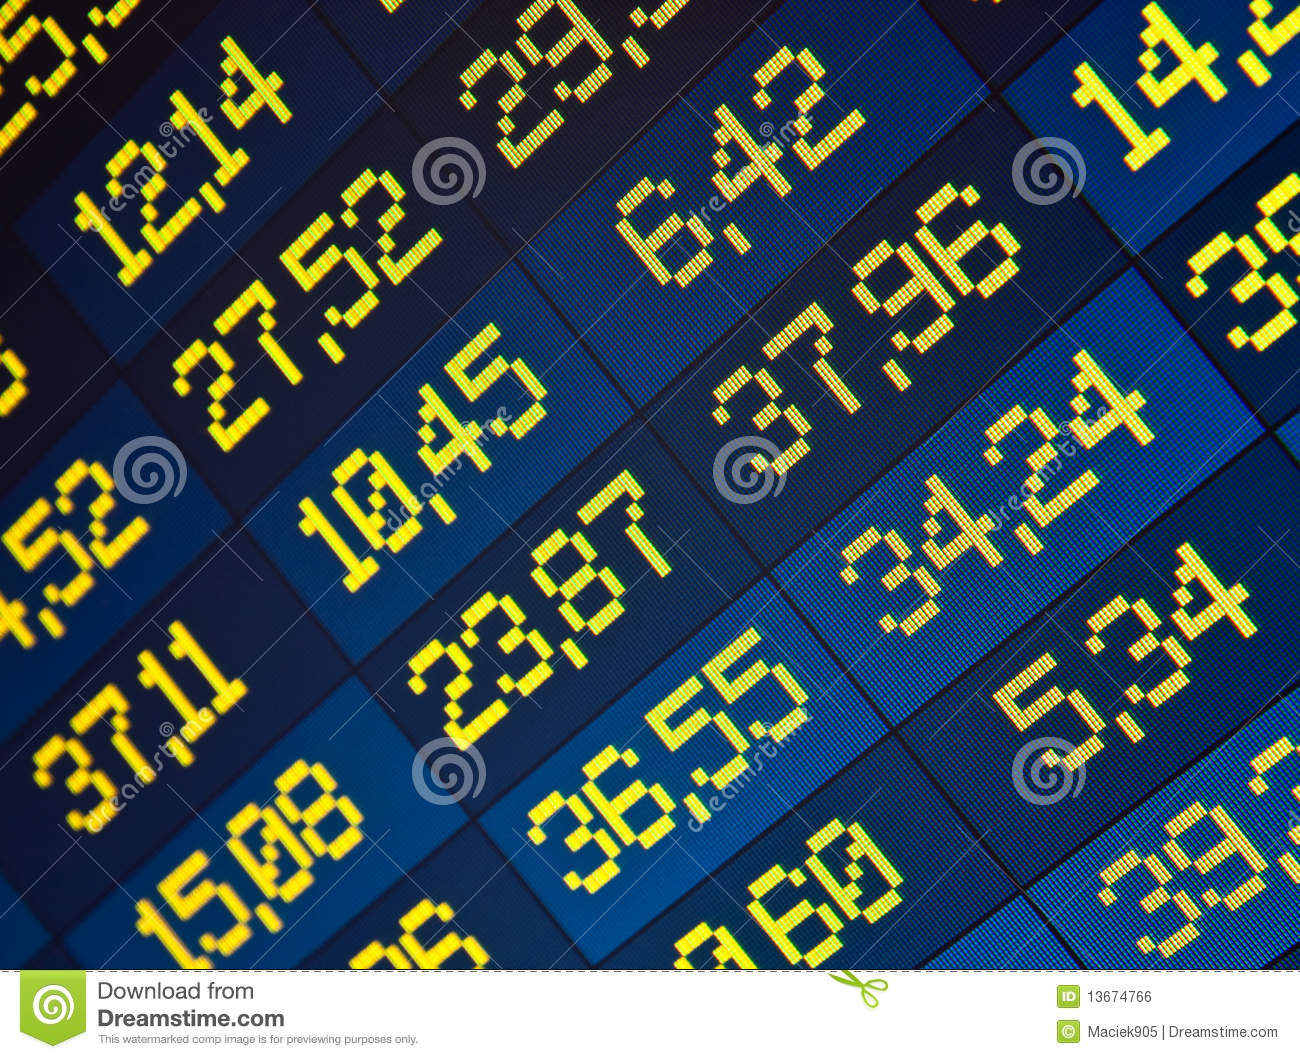 Free Stock Quote Stock Quotes At Real Time At The Stock Exchange Stock Illustration